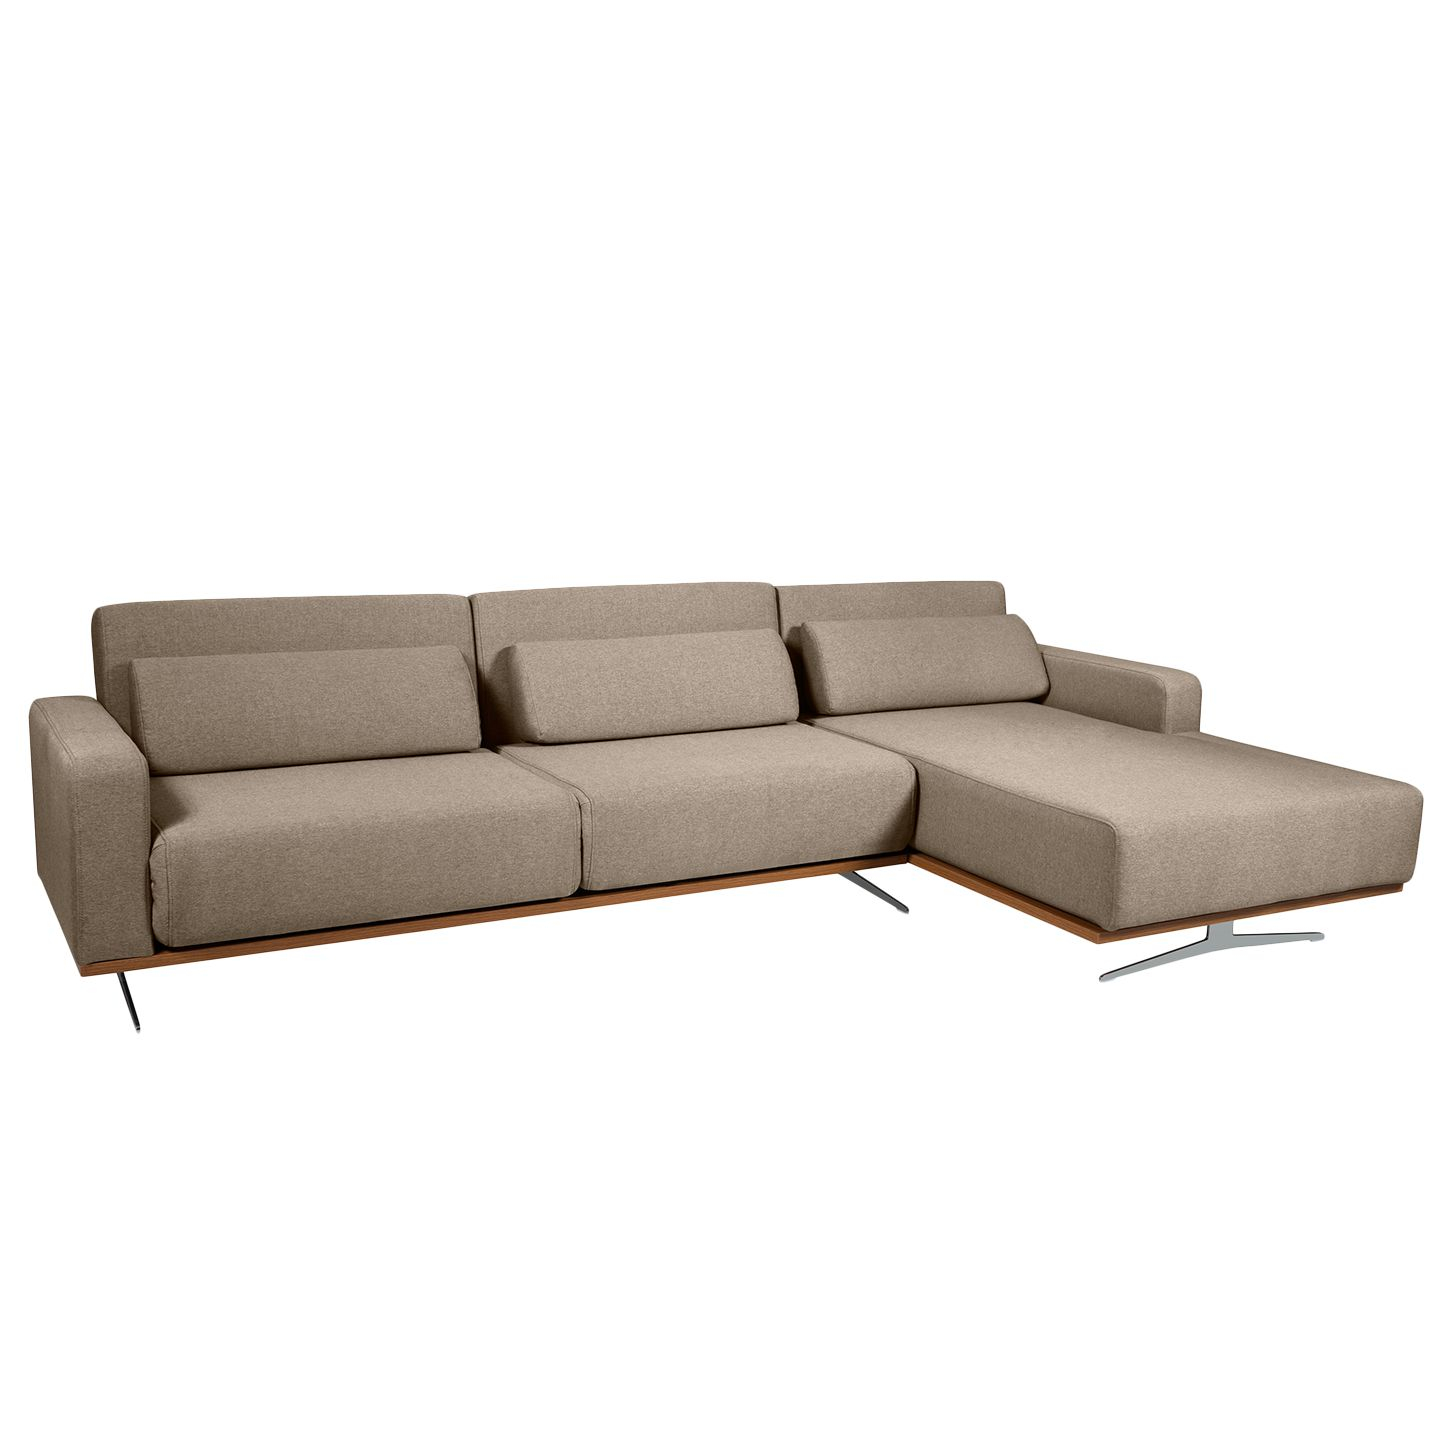 Ecksofa copperfield ii mit schlaffunktion webstoff for Ecksofa stoff grau